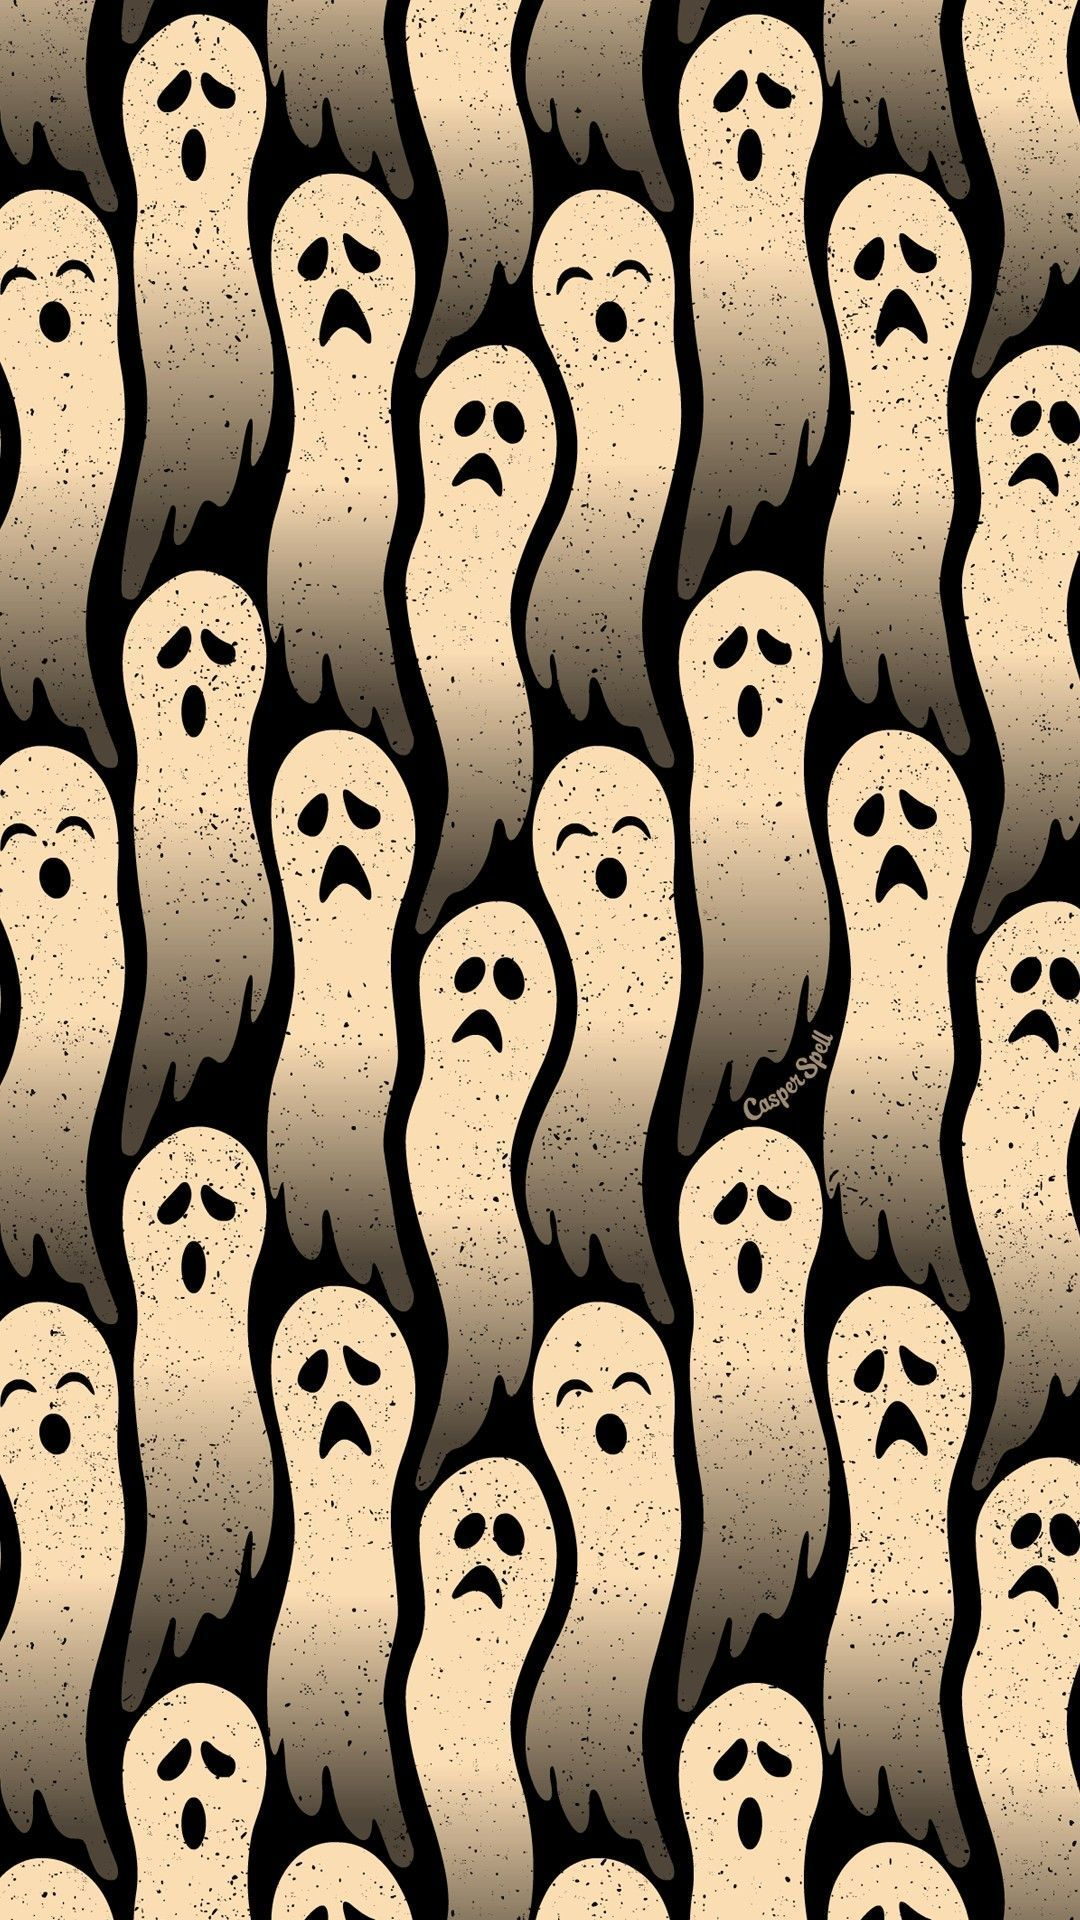 Ghosts Repeat Pattern Halloween Background Wallpaper Patterns Backgrounds Wallpapers Spirits Ether Halloween Art Halloween Wallpaper Halloween Wallpaper Iphone